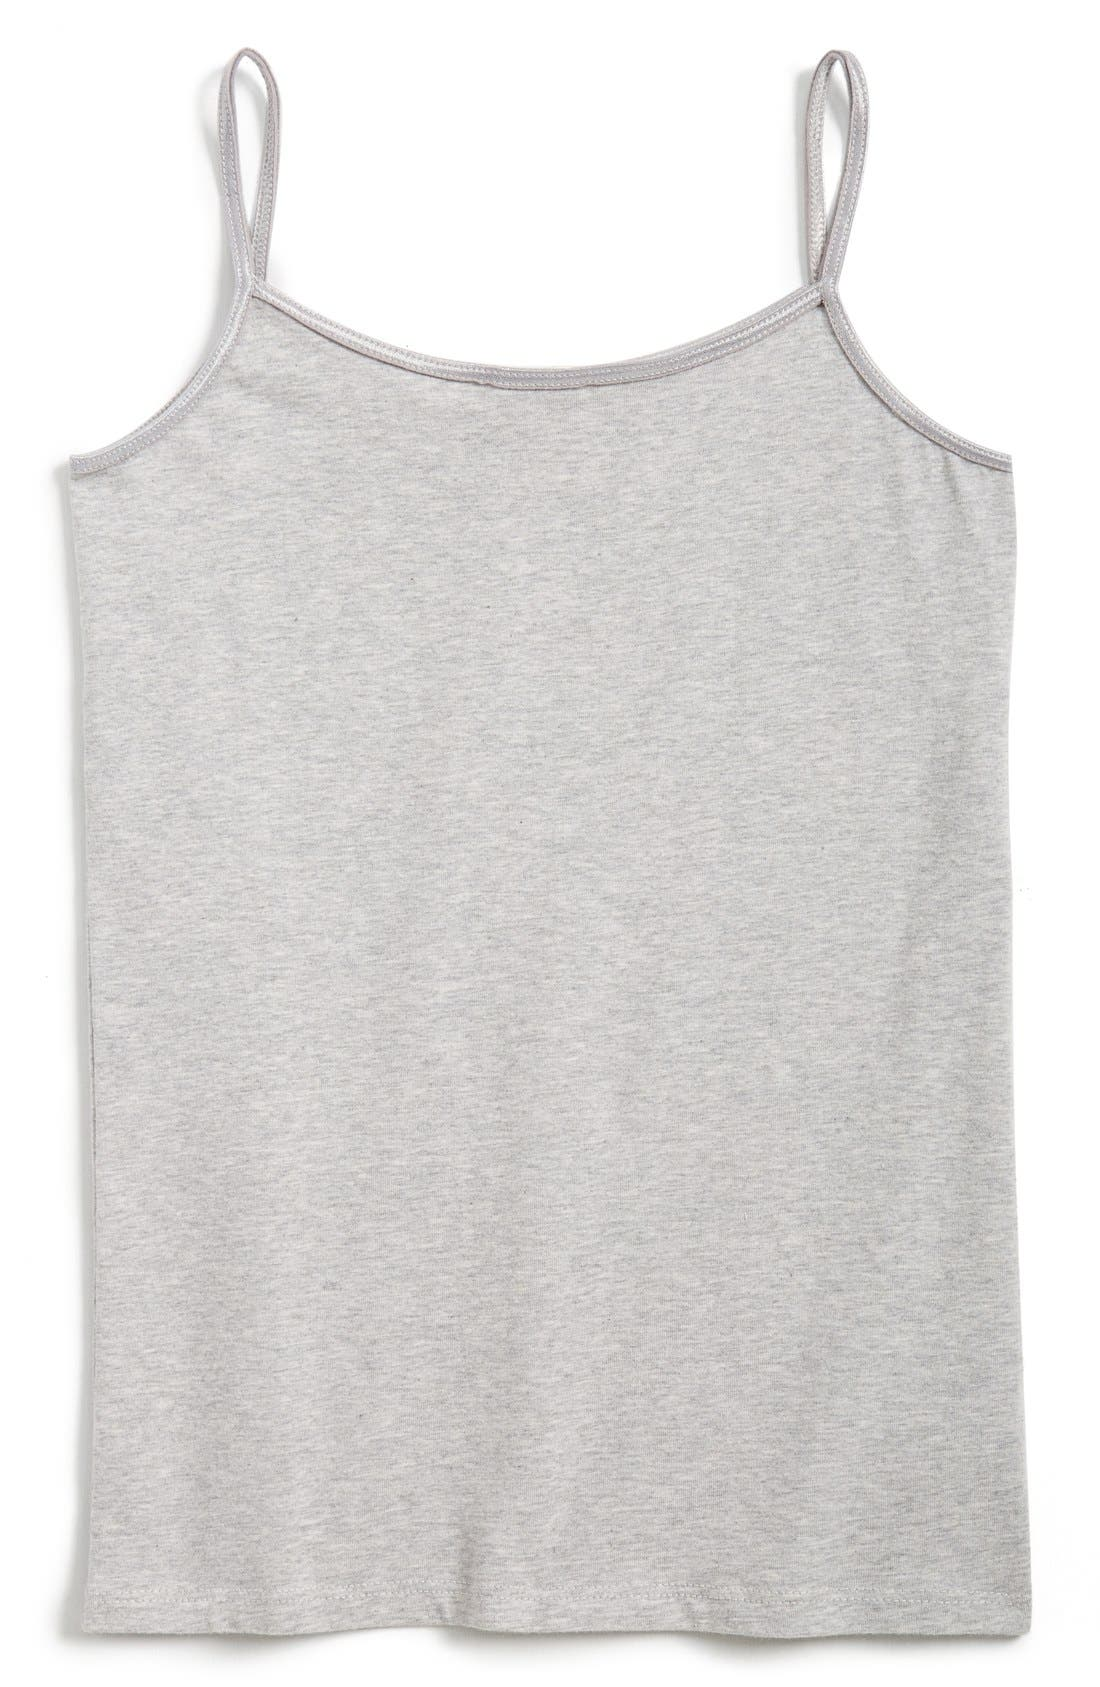 Tucker + Tate Heathered Long Camisole (Little Girls & Big Girls)